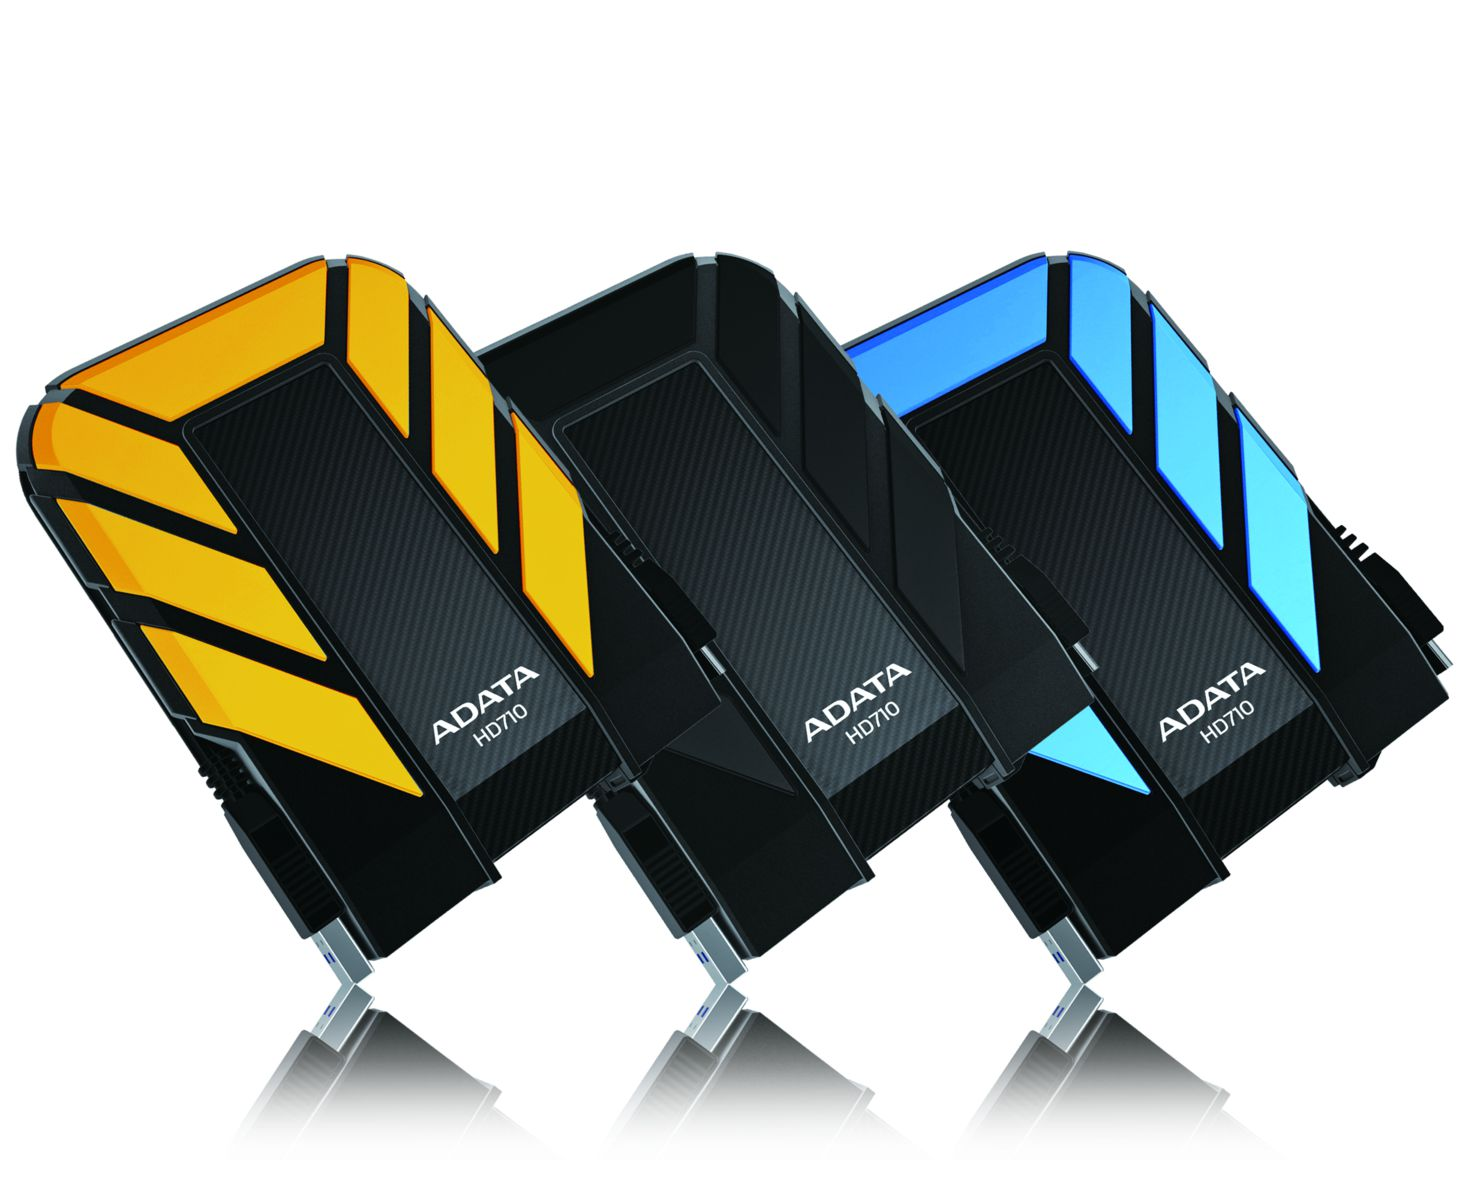 Waterproof/Dustproof/Shockproof External Hard Drive / ADATA Technology Co., Ltd.